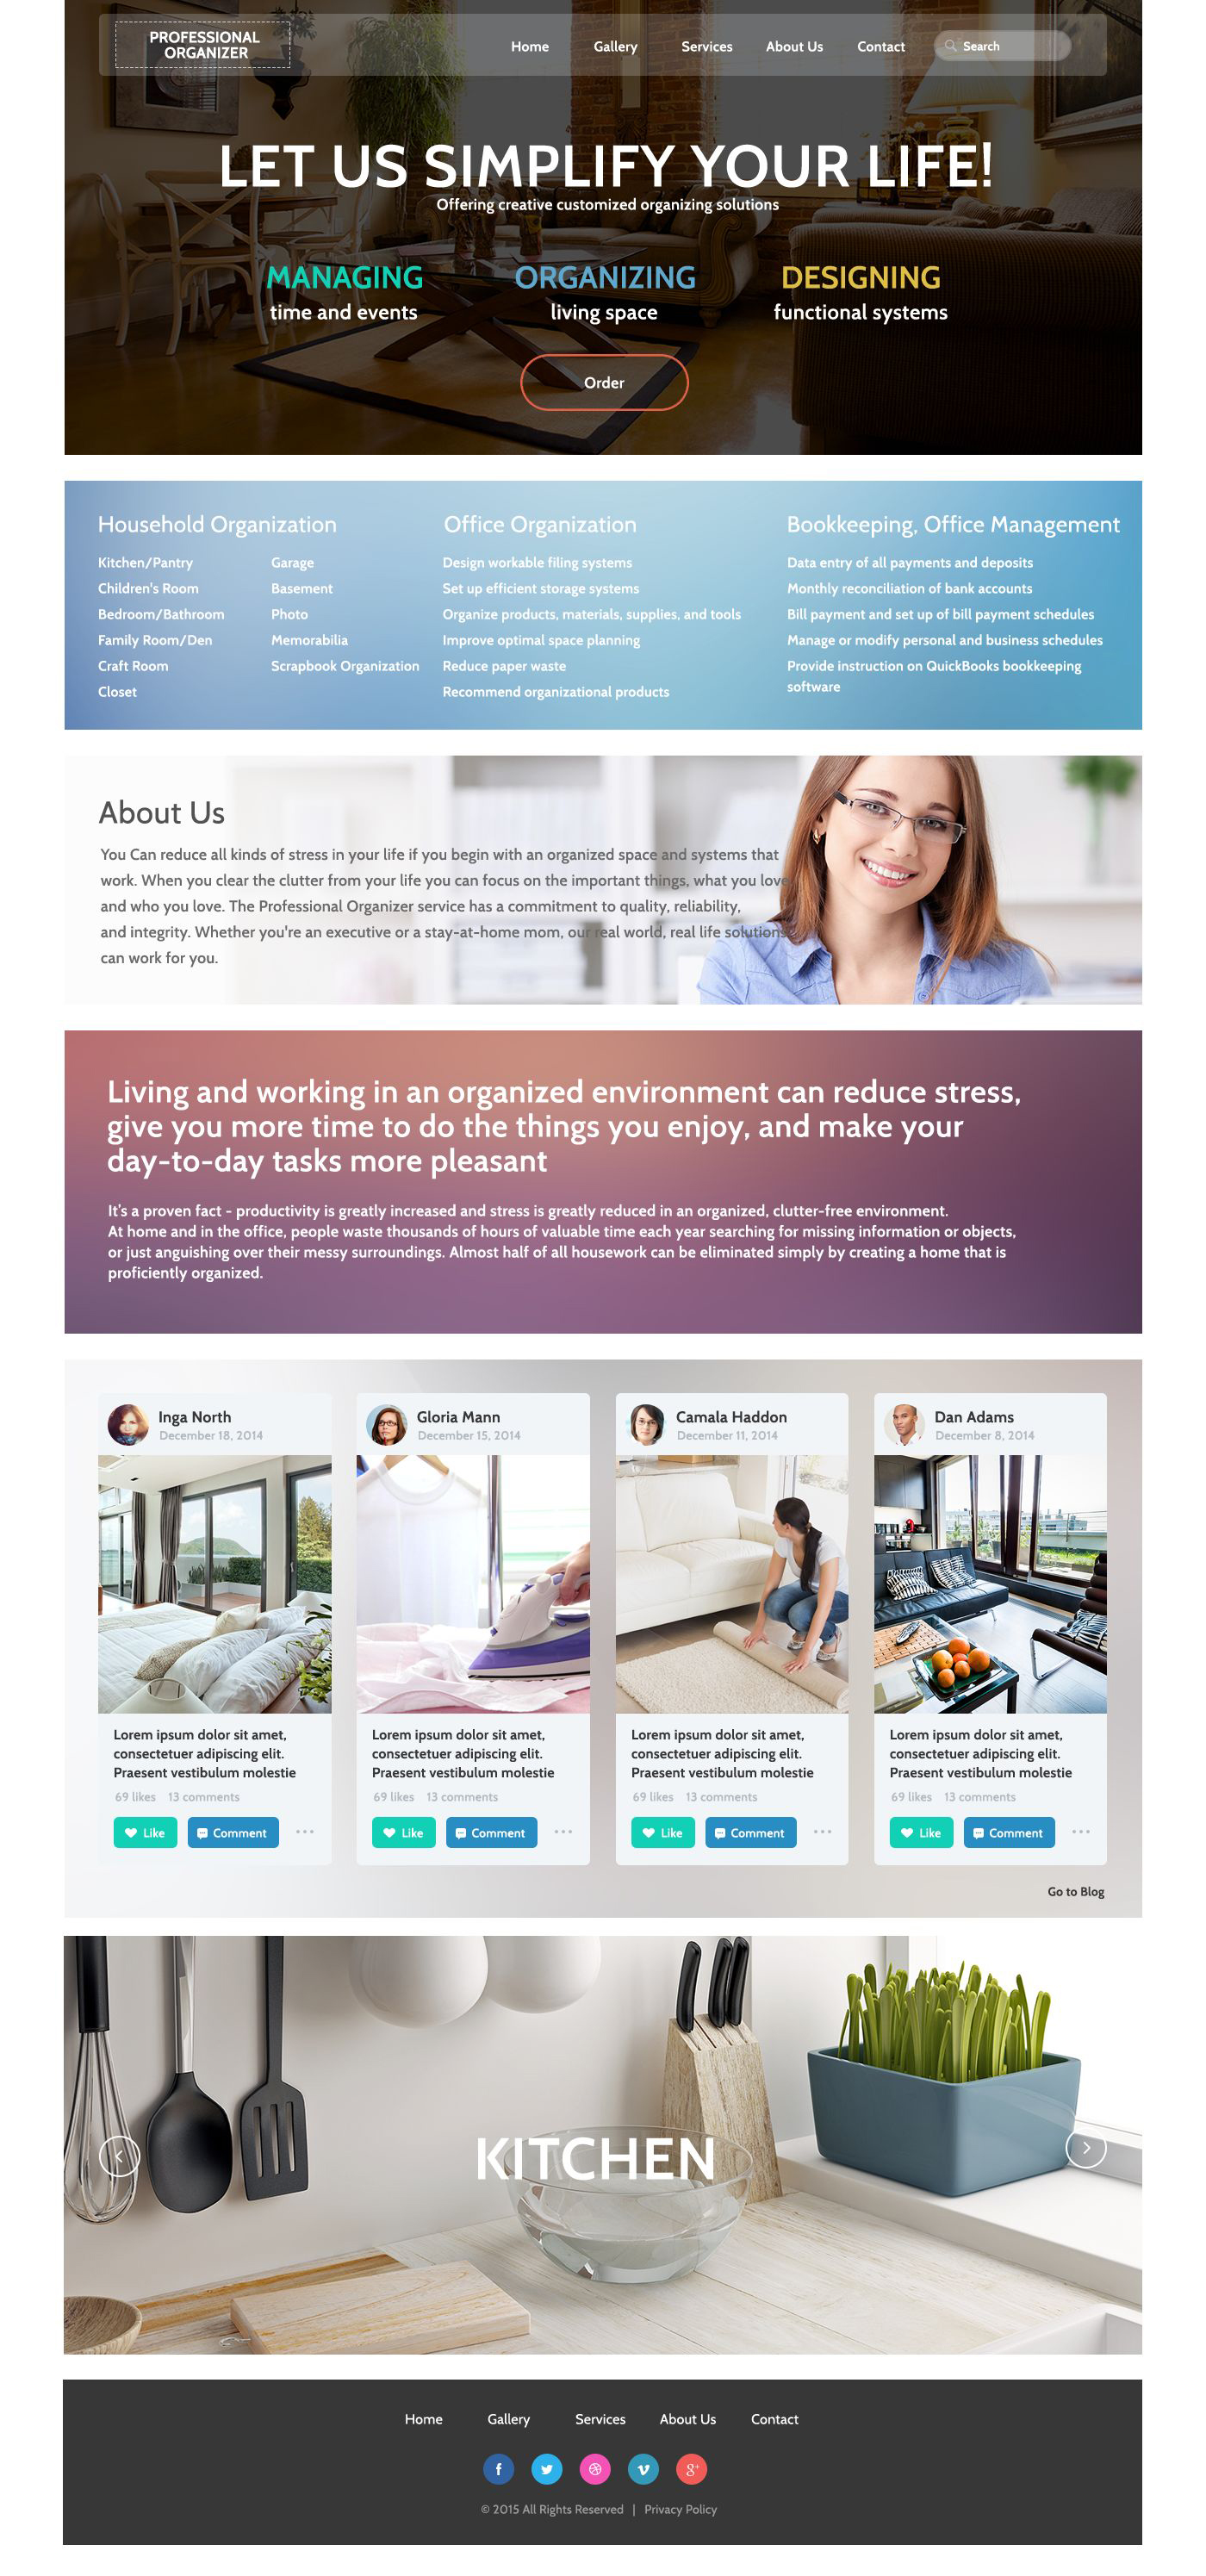 The Professional Organizer Bootstrap Design 53275, one of the best website templates of its kind (business, most popular), also known as professional organizer website template, household website template, office website template, bookkeeping website template, management and related with professional organizer, household, office, bookkeeping, management, etc.